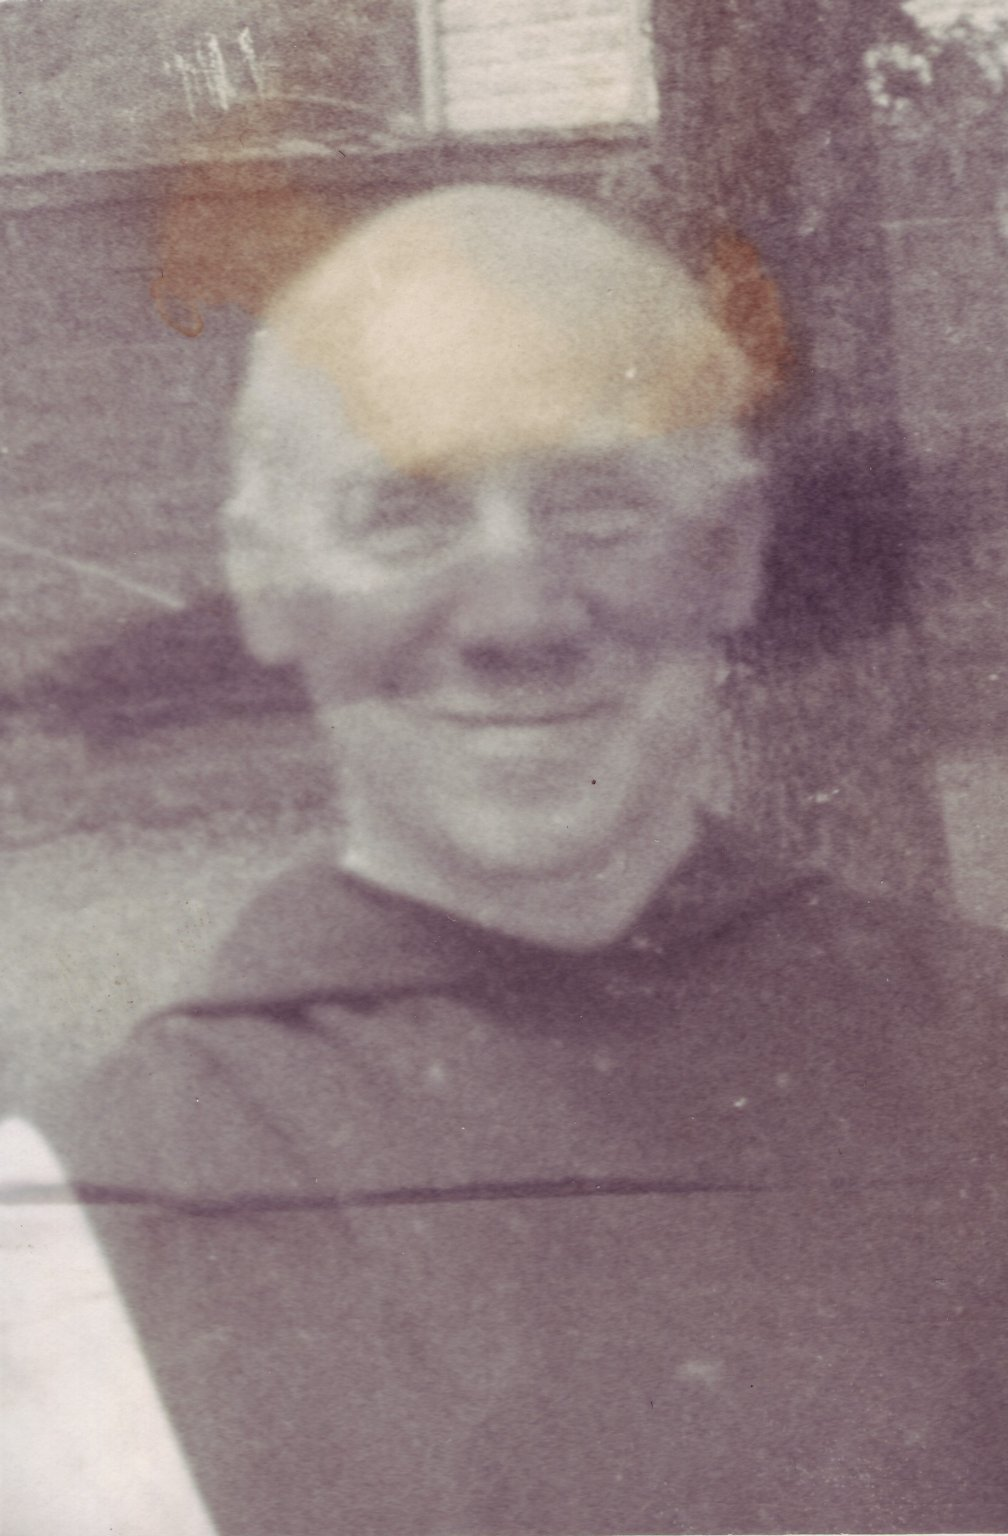 Father Thomas Merton outside of his Shangri-la hermitage at the Abbey of Gethsemani in Kentucky, ca. 1963.